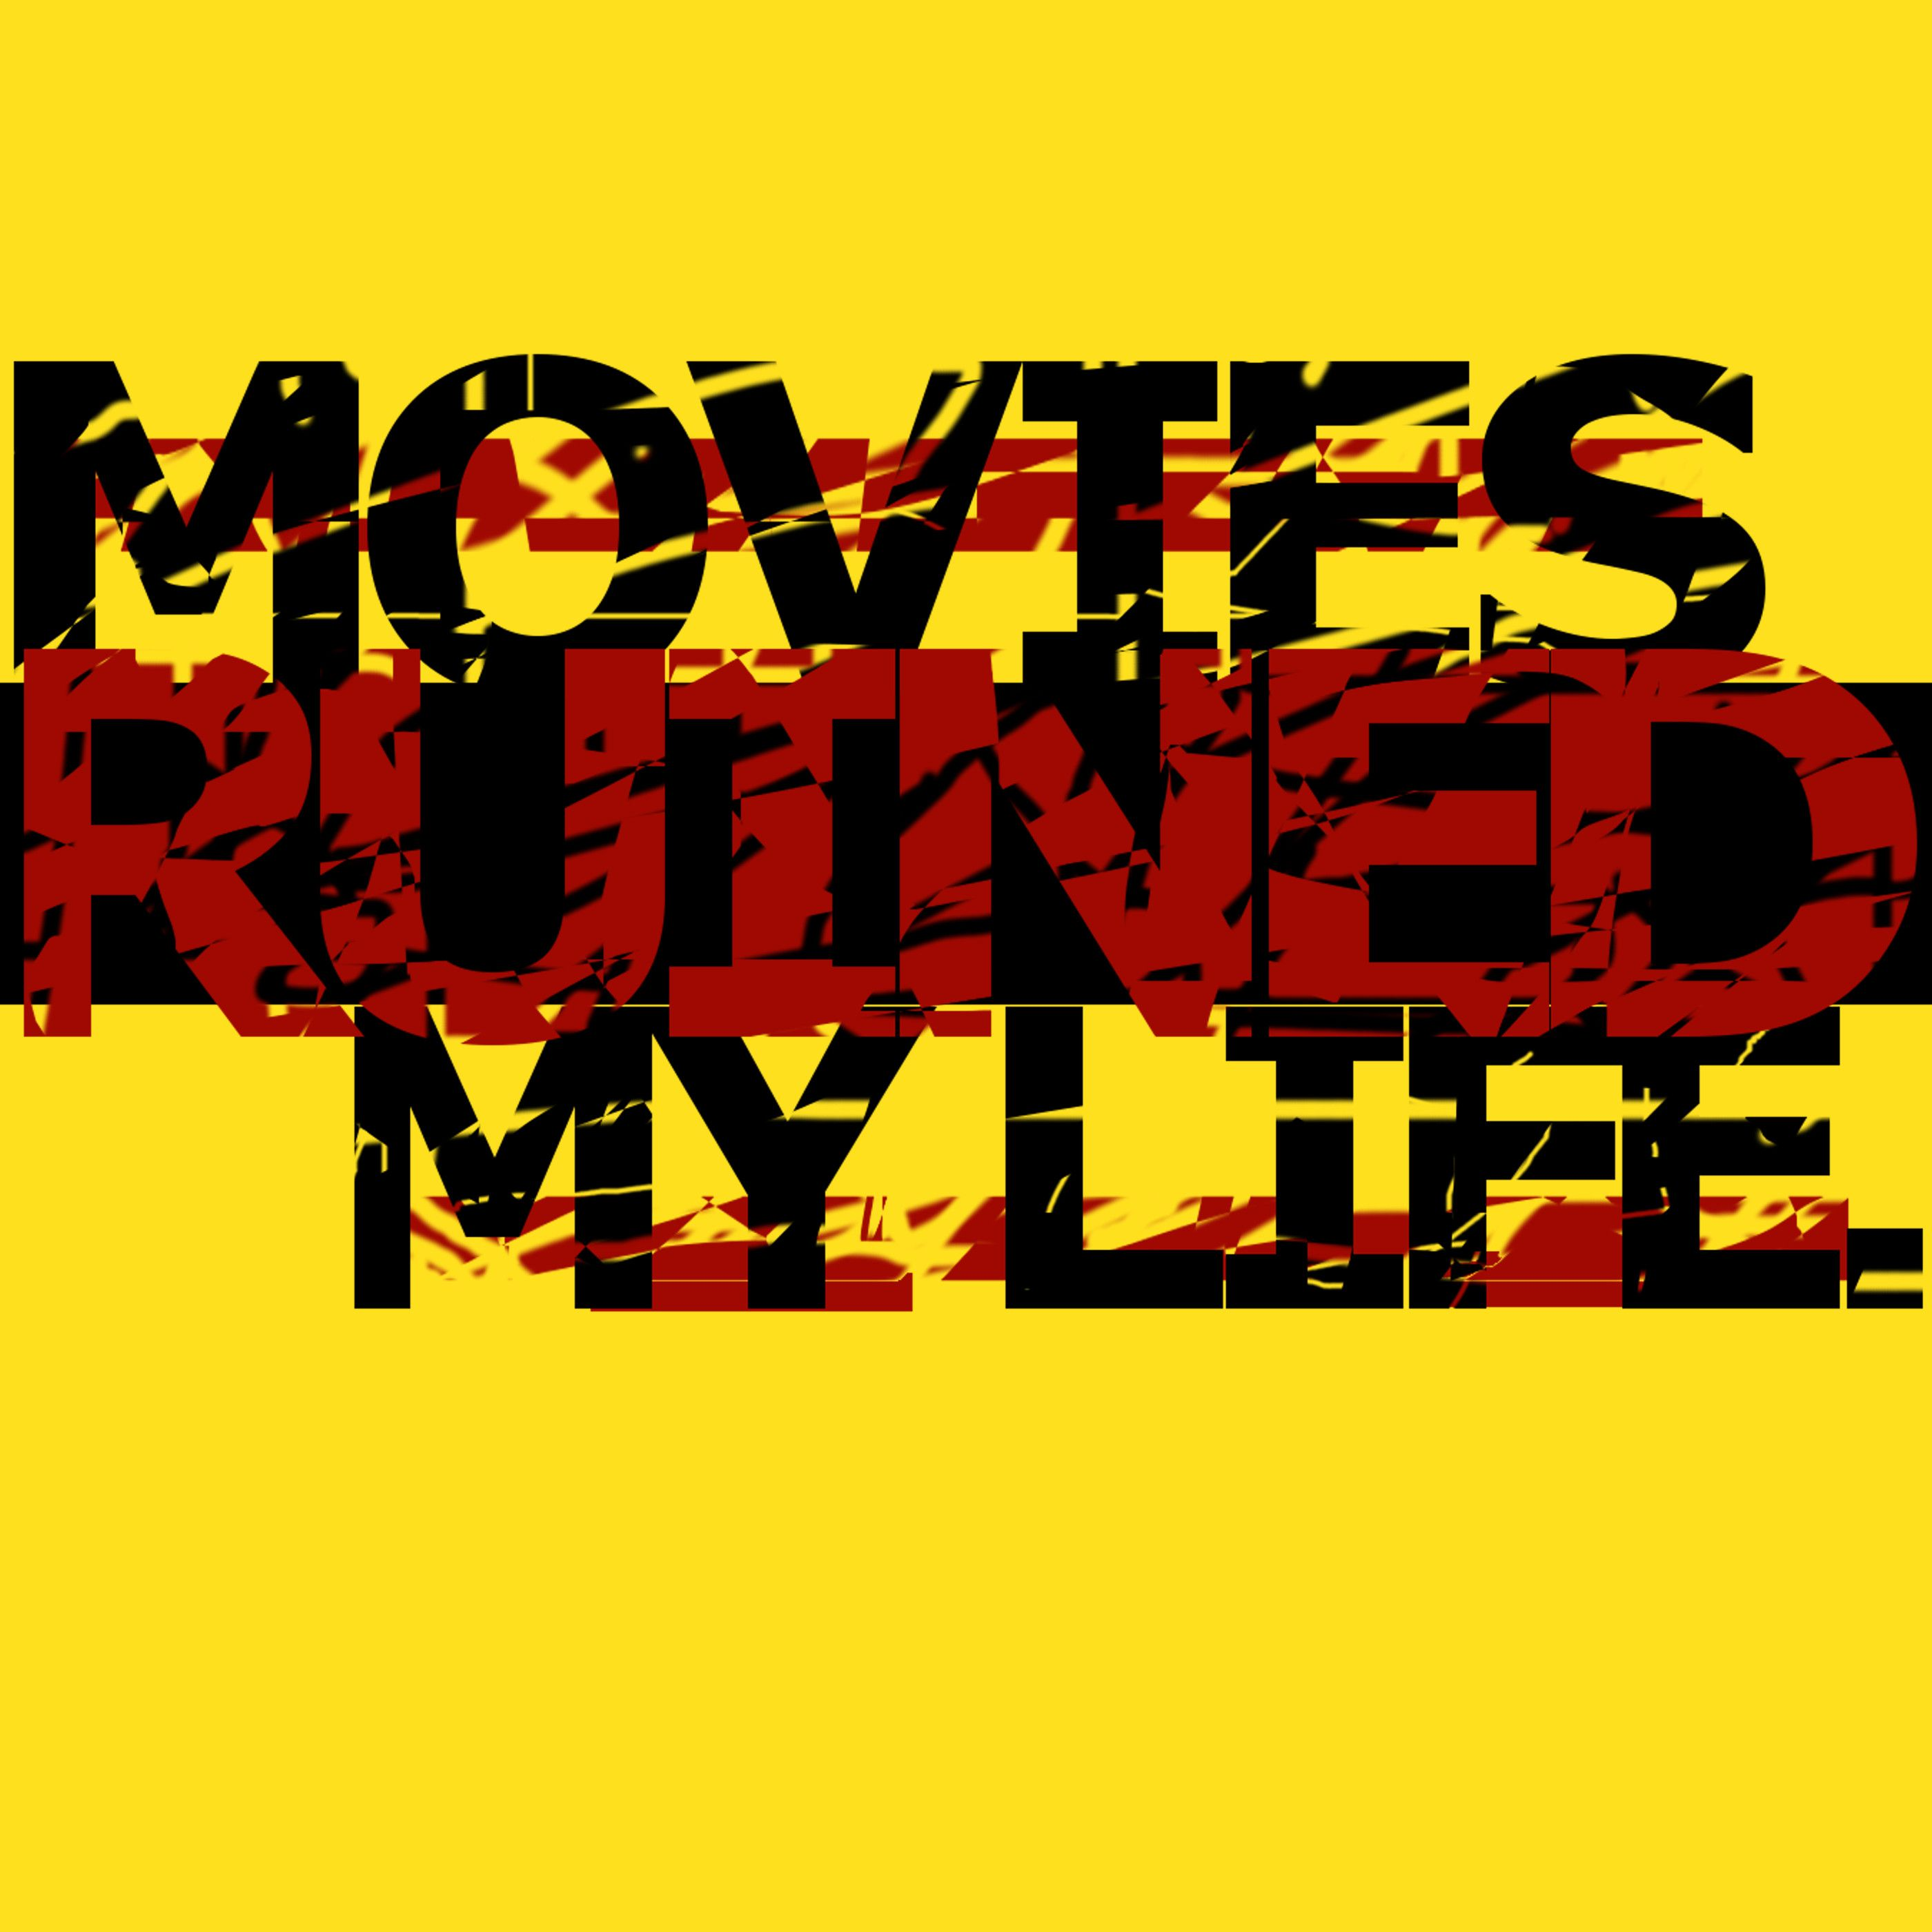 Movies Ruined My Life